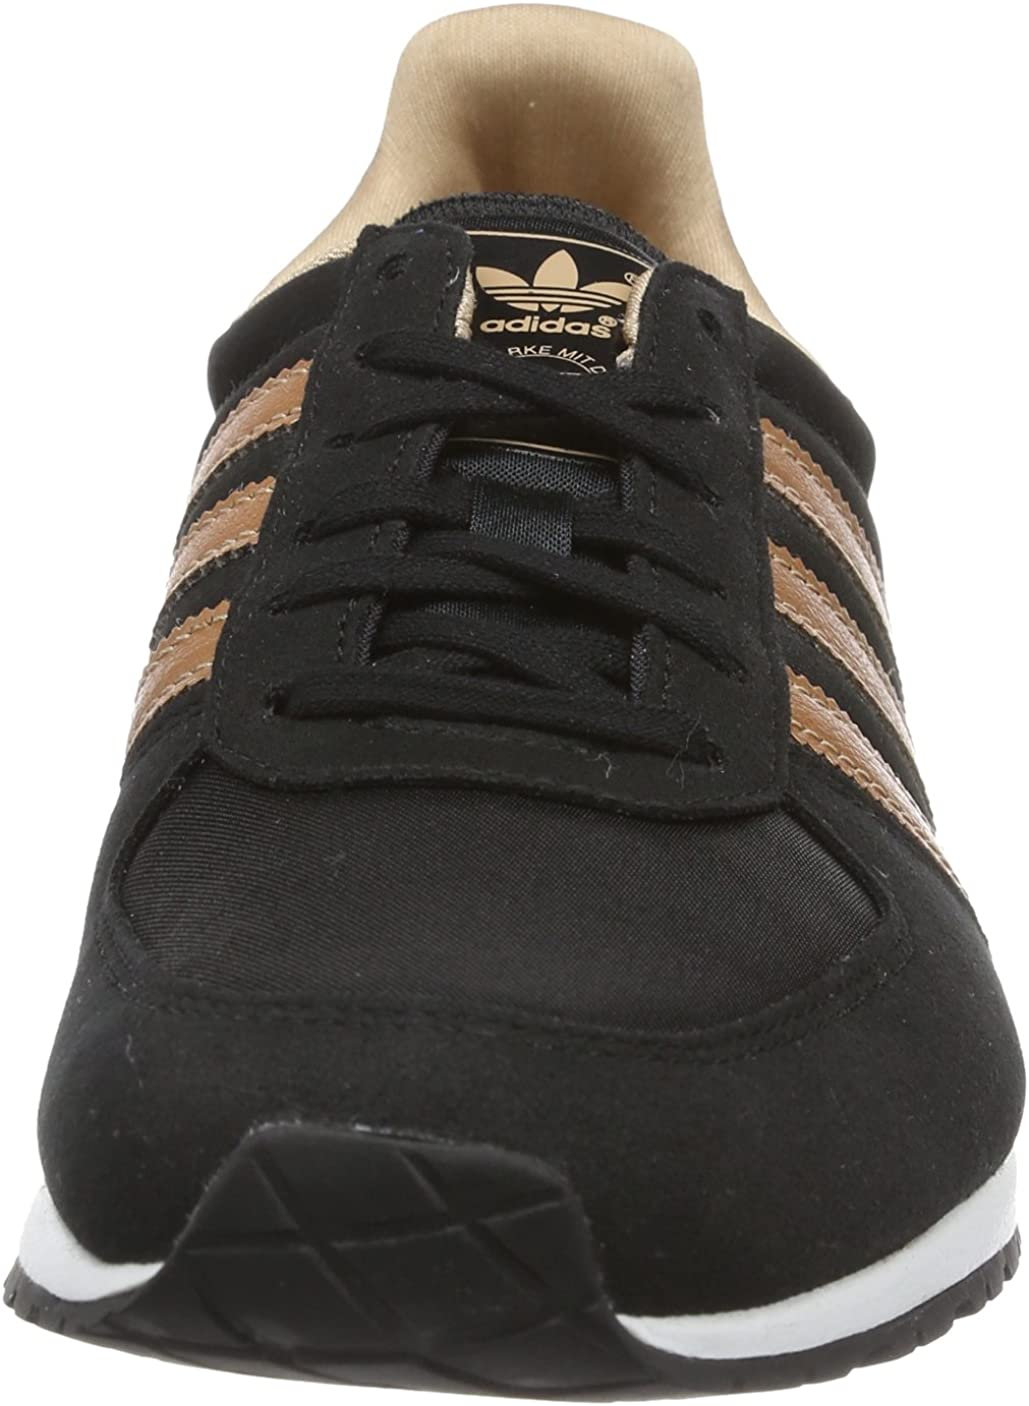 ladies black and rose gold trainers off 55% - www.usushimd.com